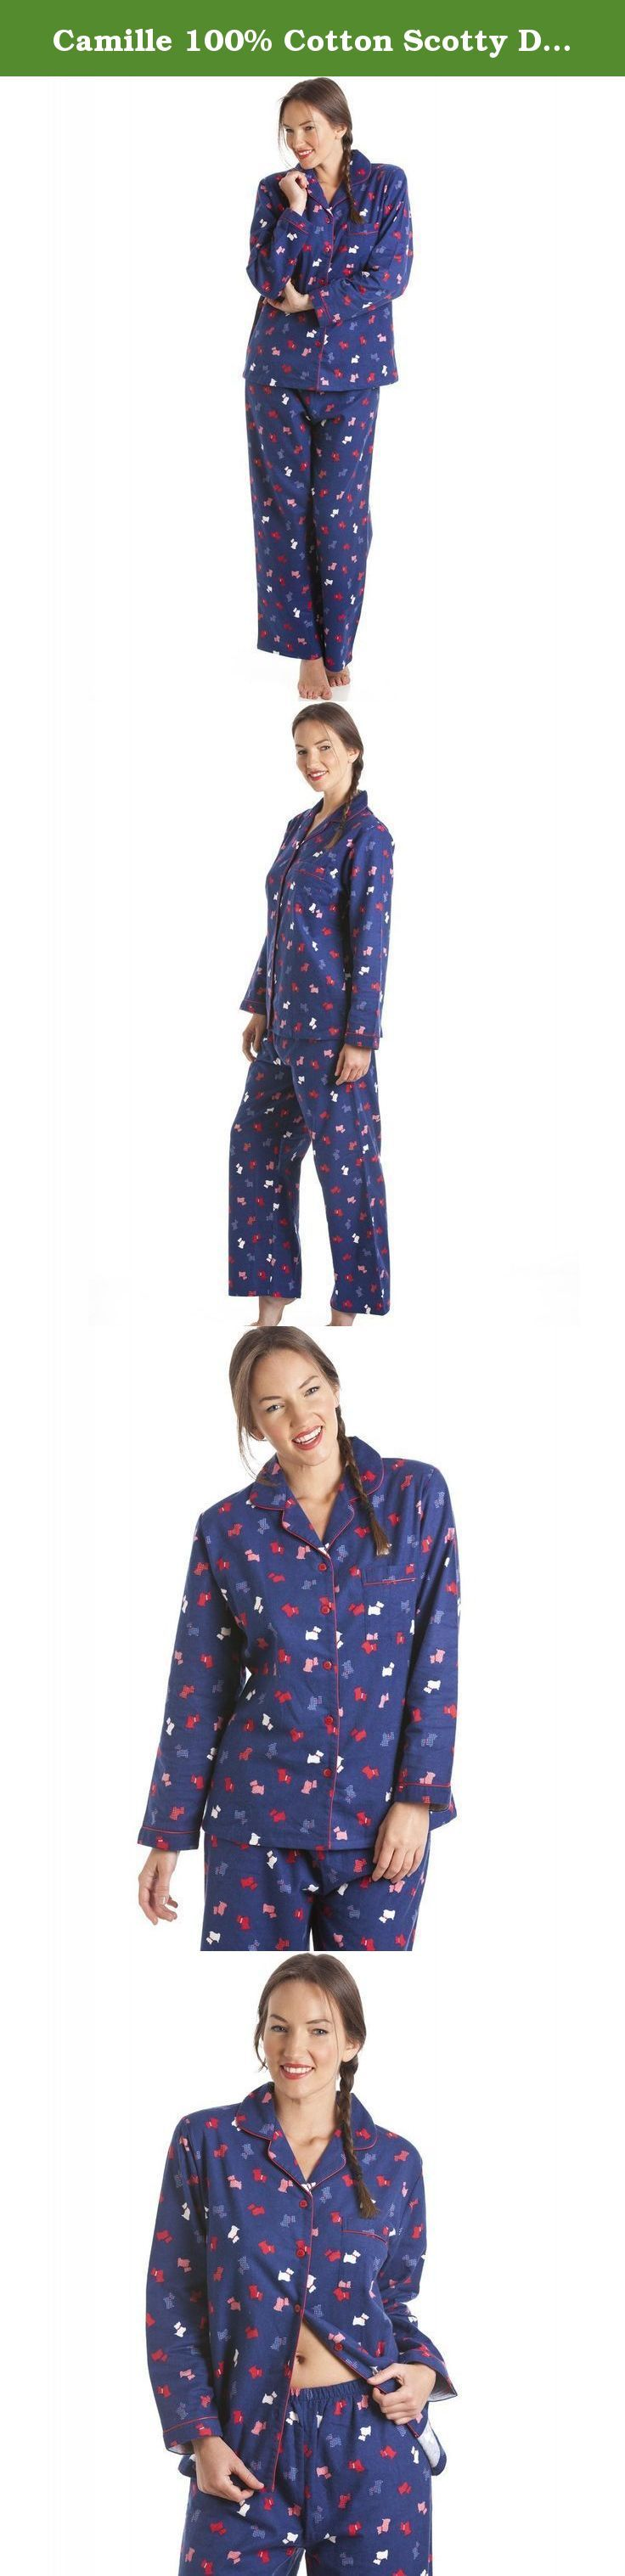 Camille 100% Cotton Scotty Dog Print Full Length Wincy Pyjama Set 14/16 BLUE. Luxury 100% cotton long sleeve pyjamas with full length bottoms. Featuring a Scotty dog print with contrasting piped edging around the neckline and cuffs. Part of our new range of 100% Cotton nightwear in a wide range of colours and designs. .